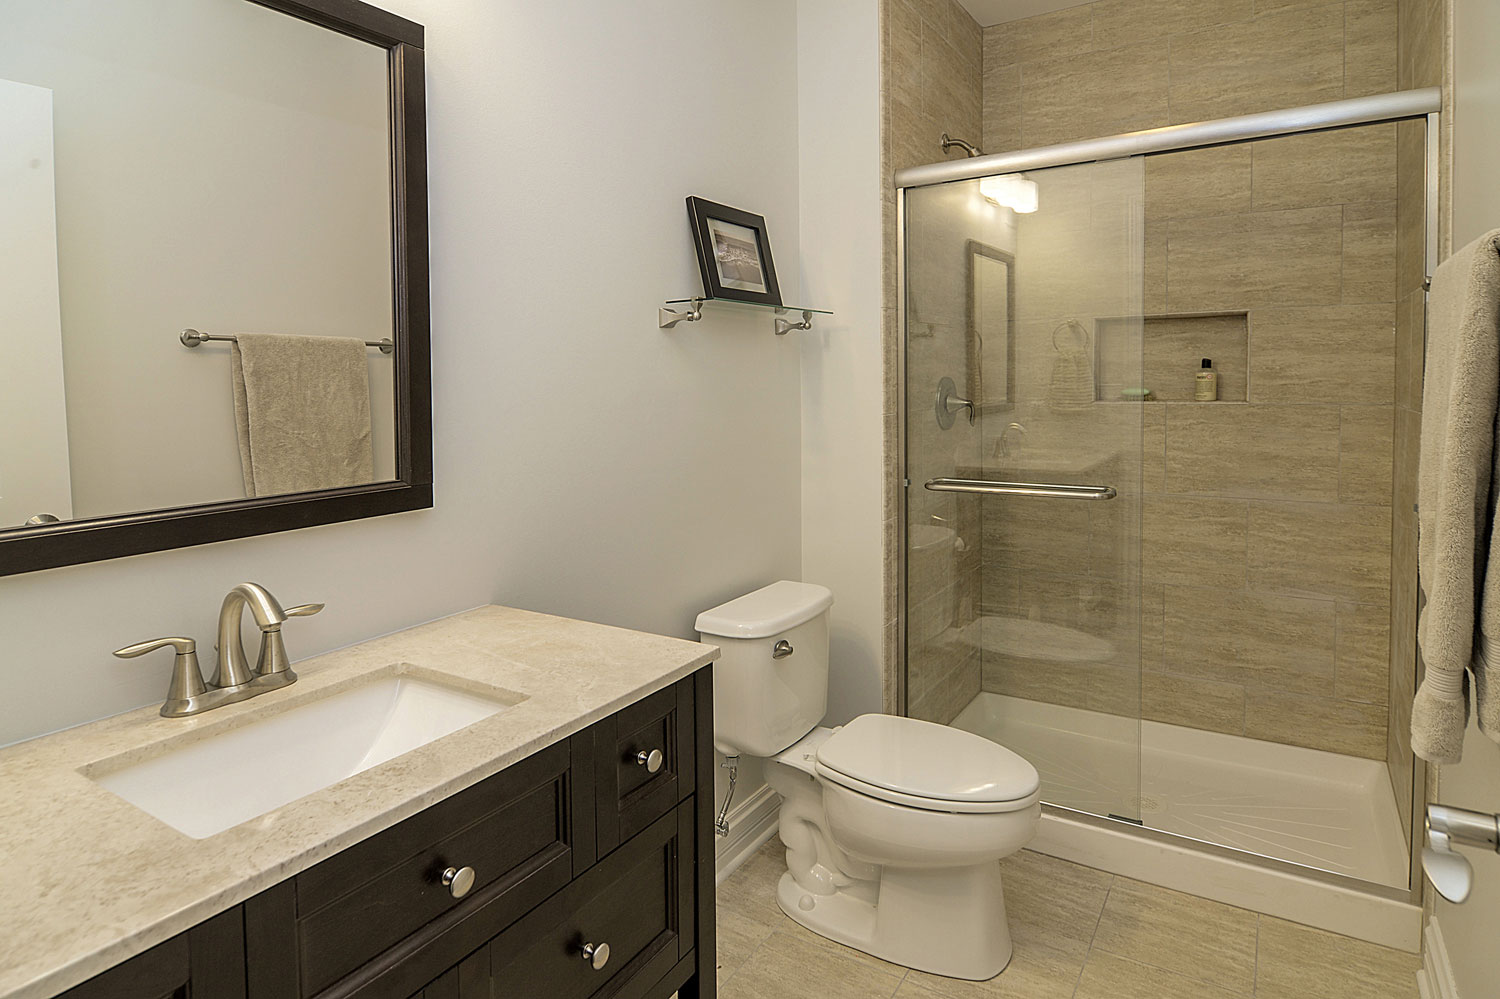 Steve emily 39 s hall bathroom remodel pictures home for Bathroom remodeling pictures and ideas